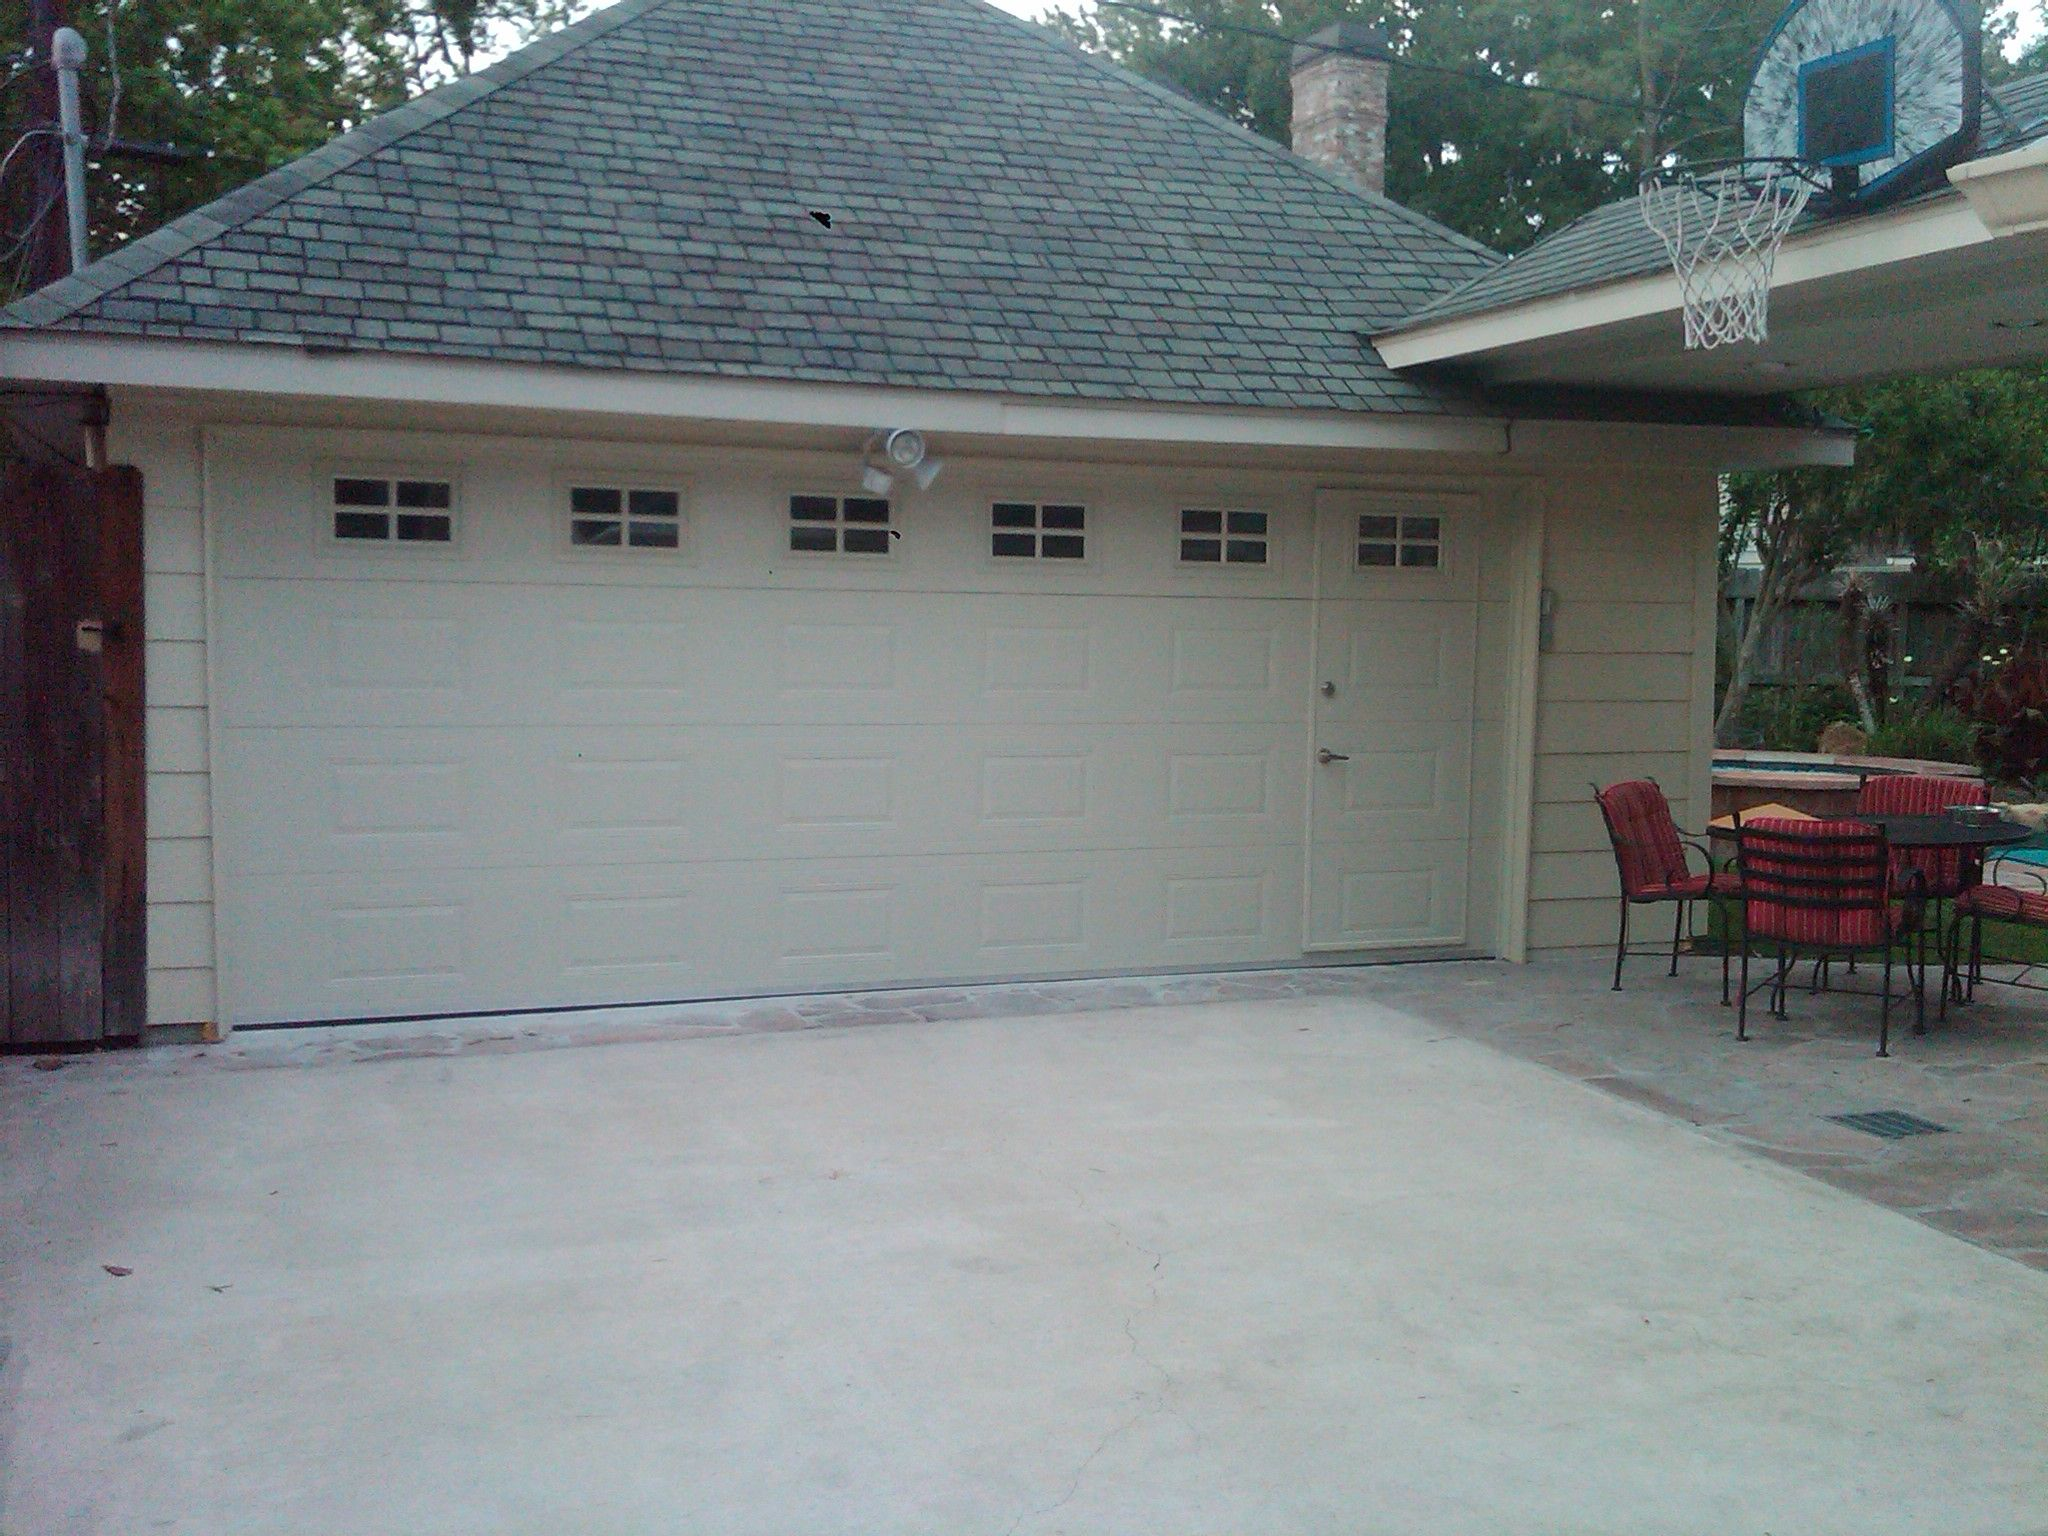 Garage door repairs by s amp t garage doors of northern virginia - Garage Doors Residential Walk Thru Garage1